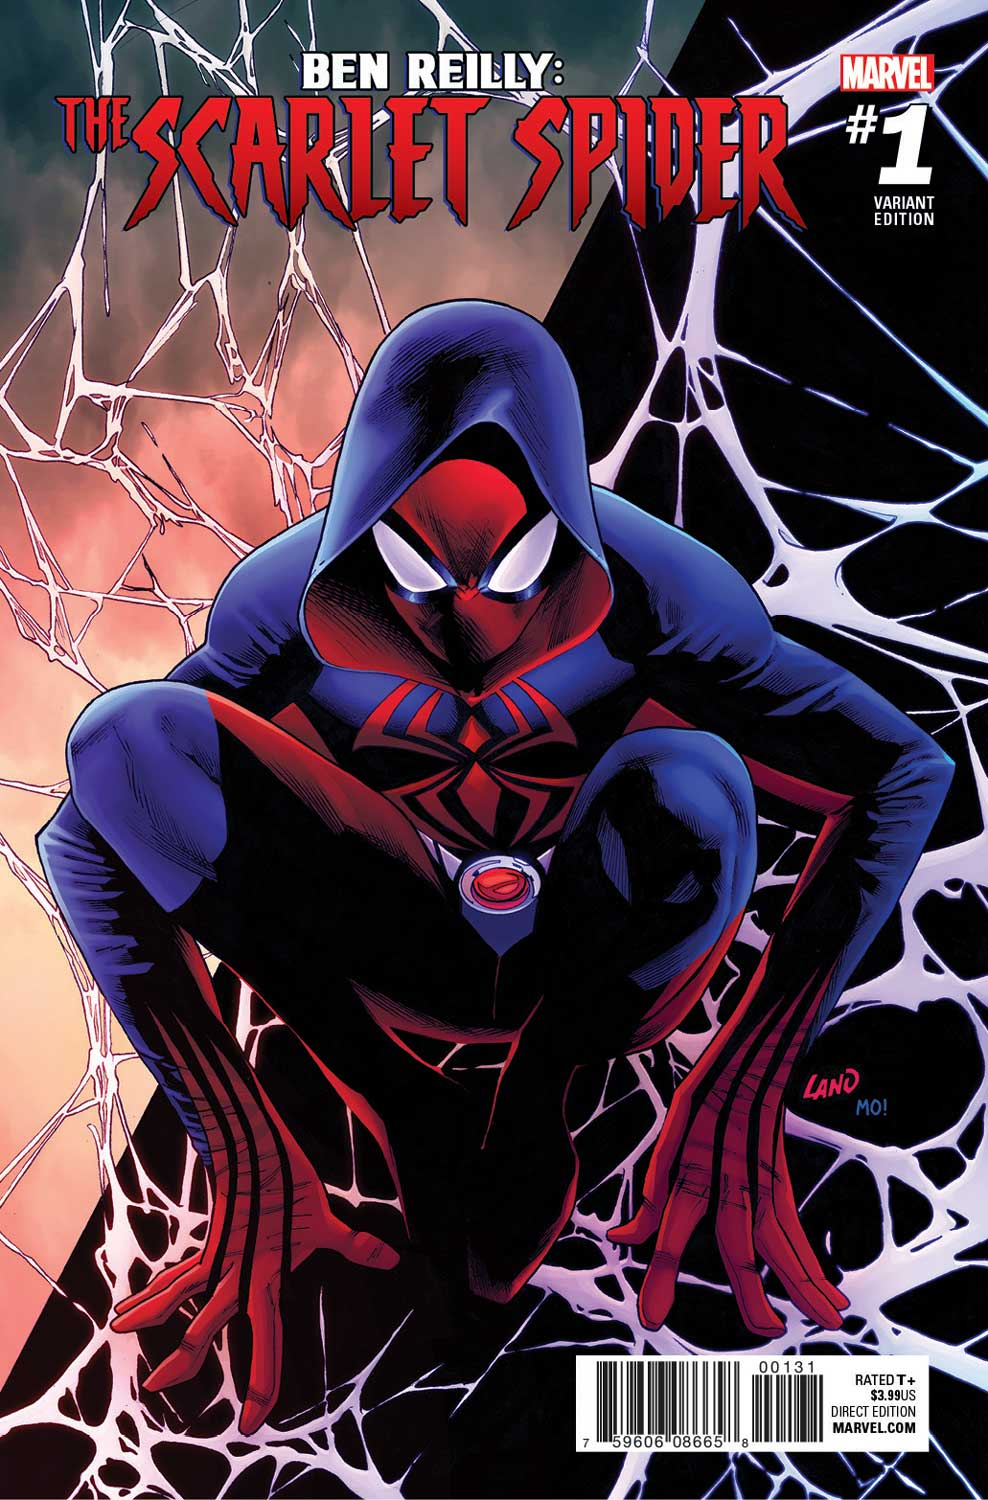 Ben Reilly The Scarlet Spider 1 Preview First Comics News